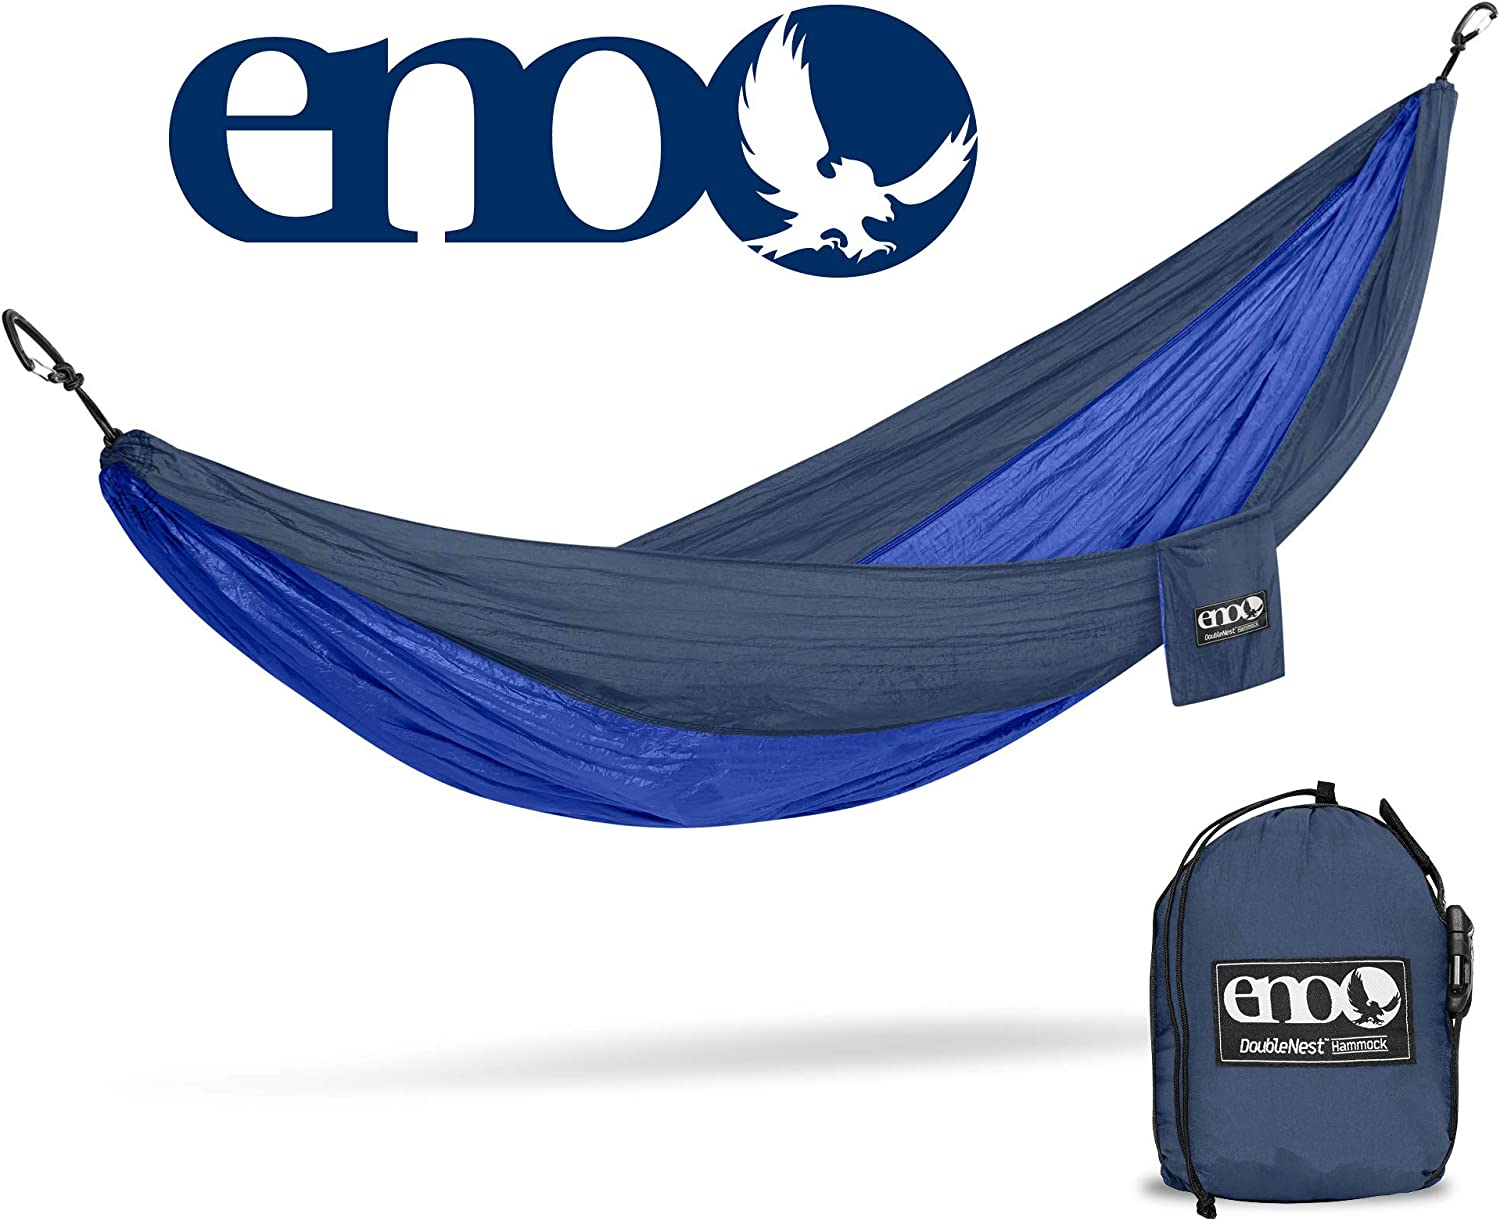 Eno Double Nest Hammock Navy Royal